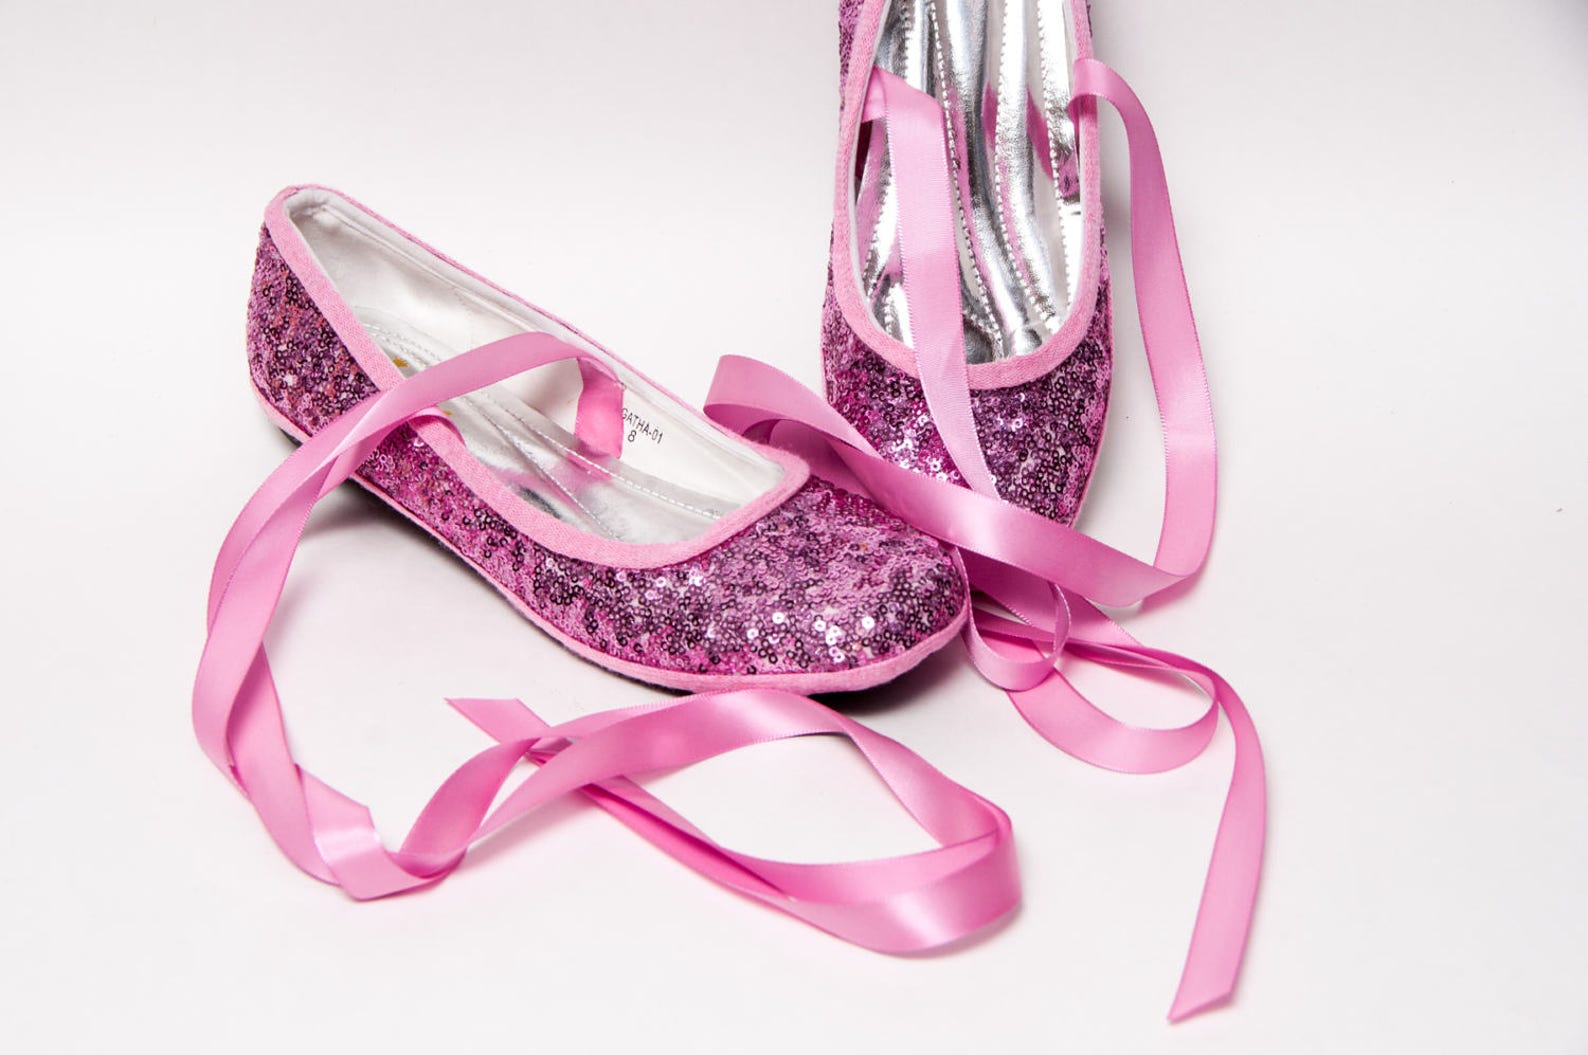 tiny sequin - blush pink ballet flats slippers shoes with matching ribbons